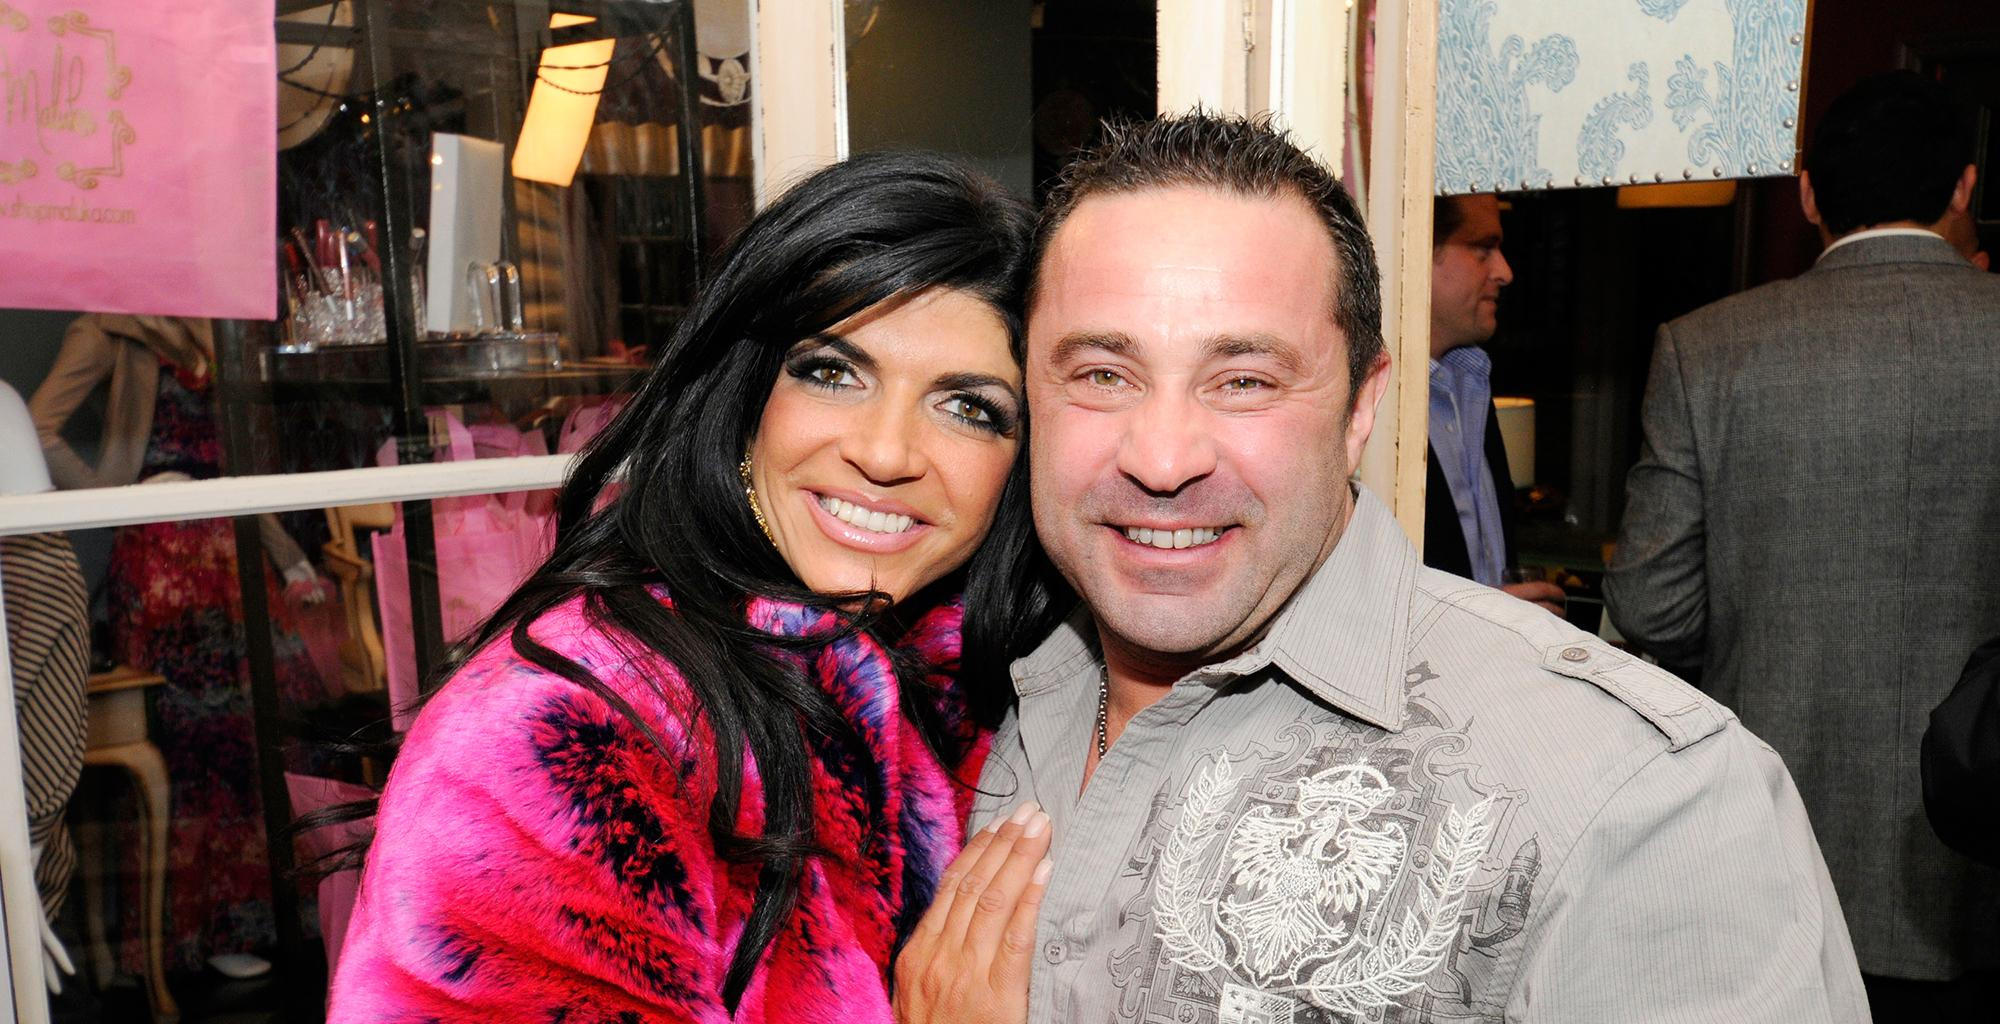 Teresa Giudice Determined To Take Daughters To Visit Their Dad On Father's Day - She'll Do Everything In Her Power!